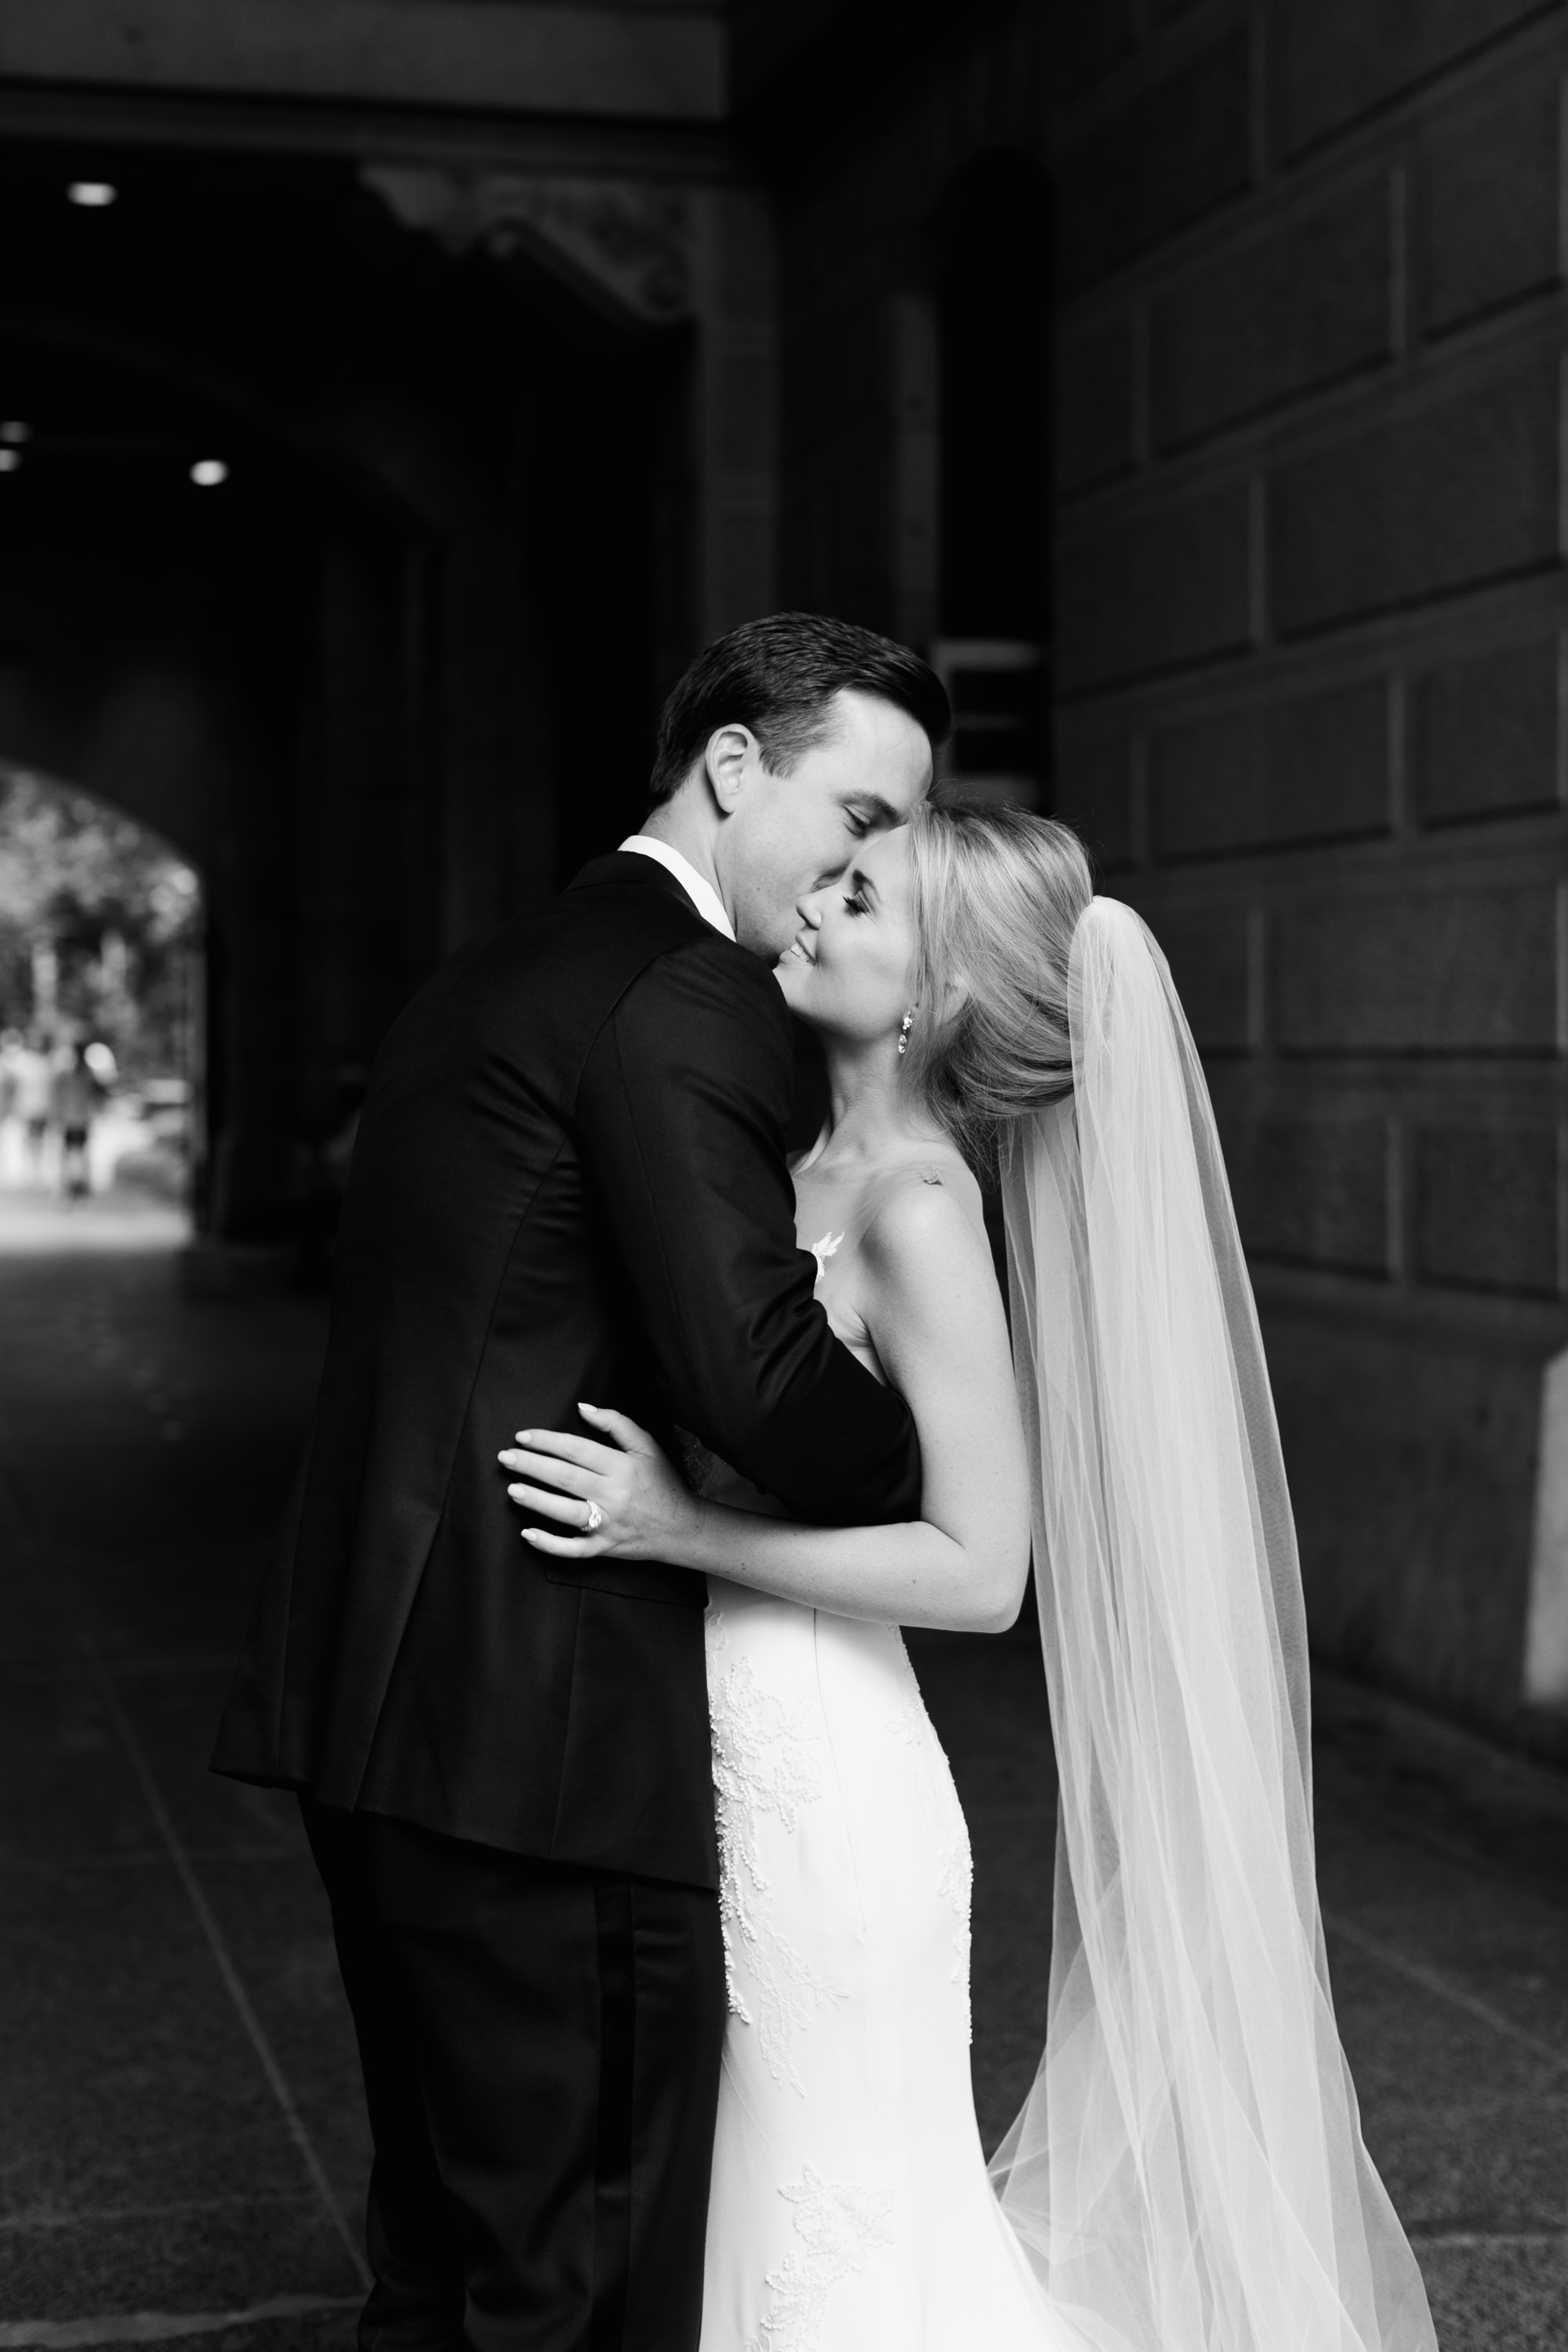 photography-wedding-weddings-natural-candid-union league-philadelphia-black tie-city hall-broad street-editorial-modern-fine-art-17.JPG